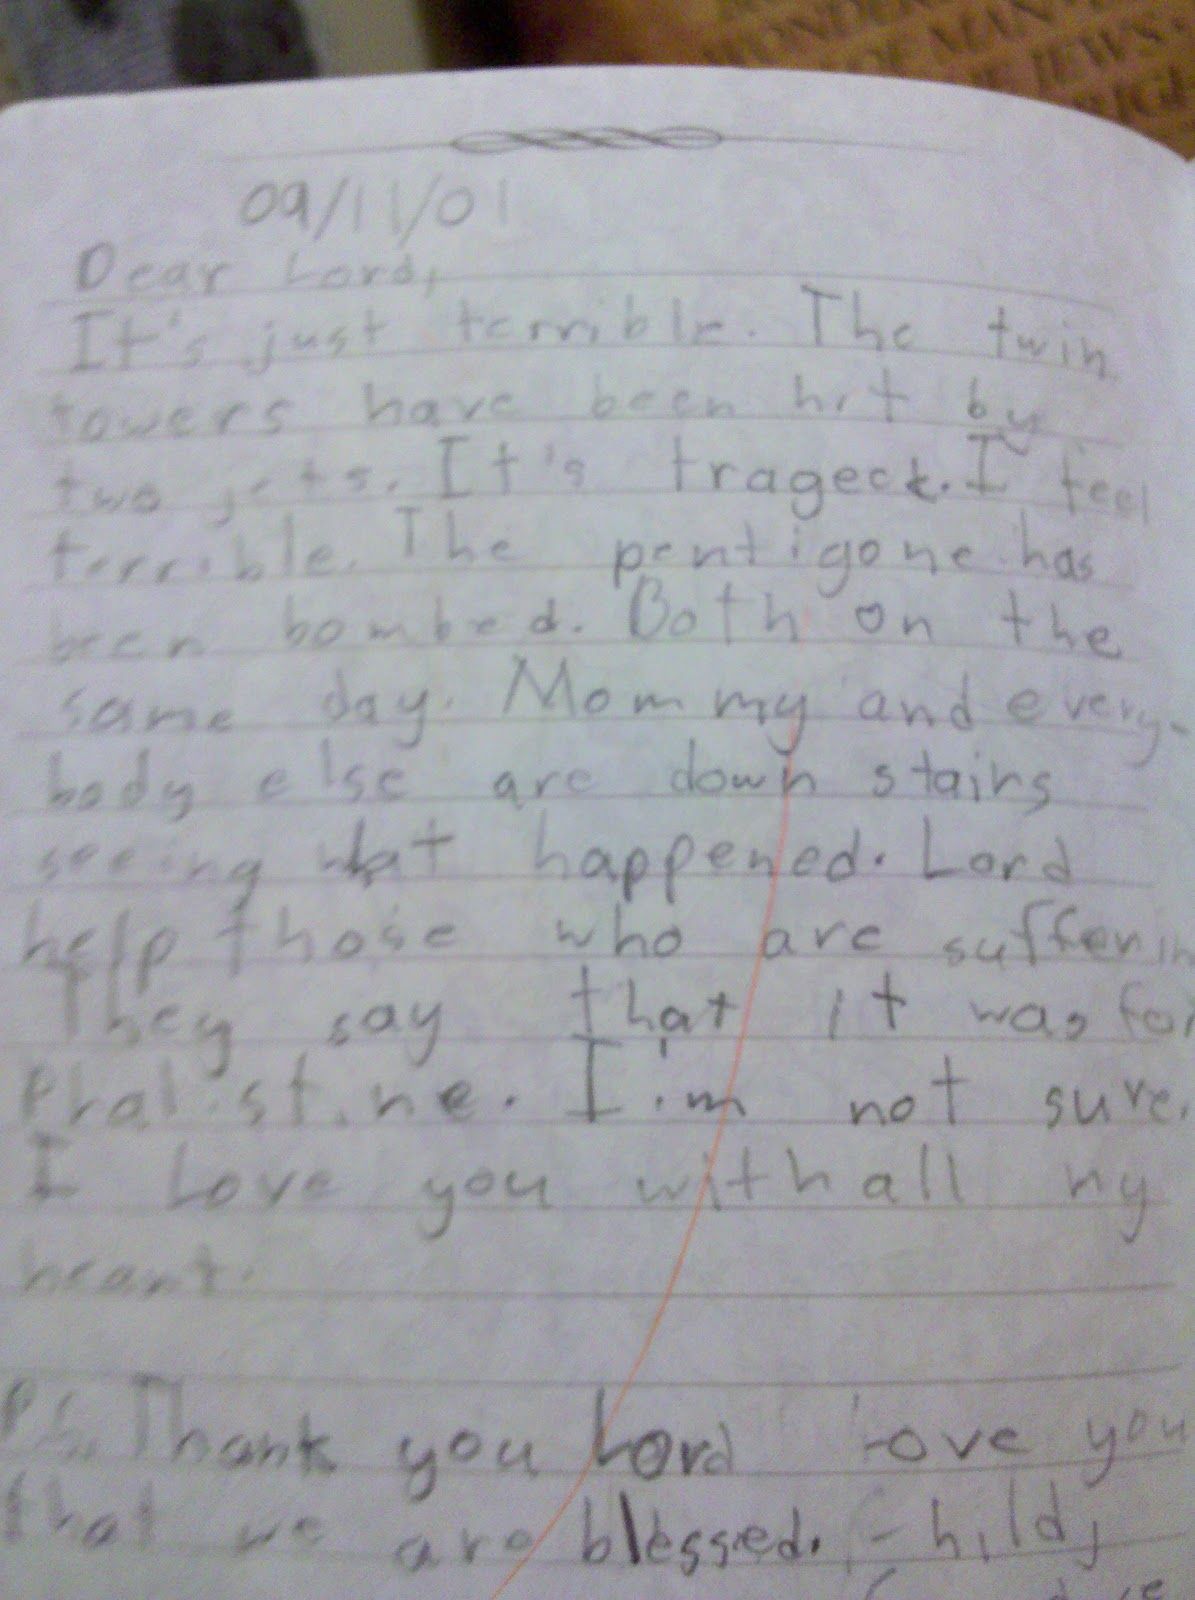 True Stories Journal Entries Letters Remembering 9 11